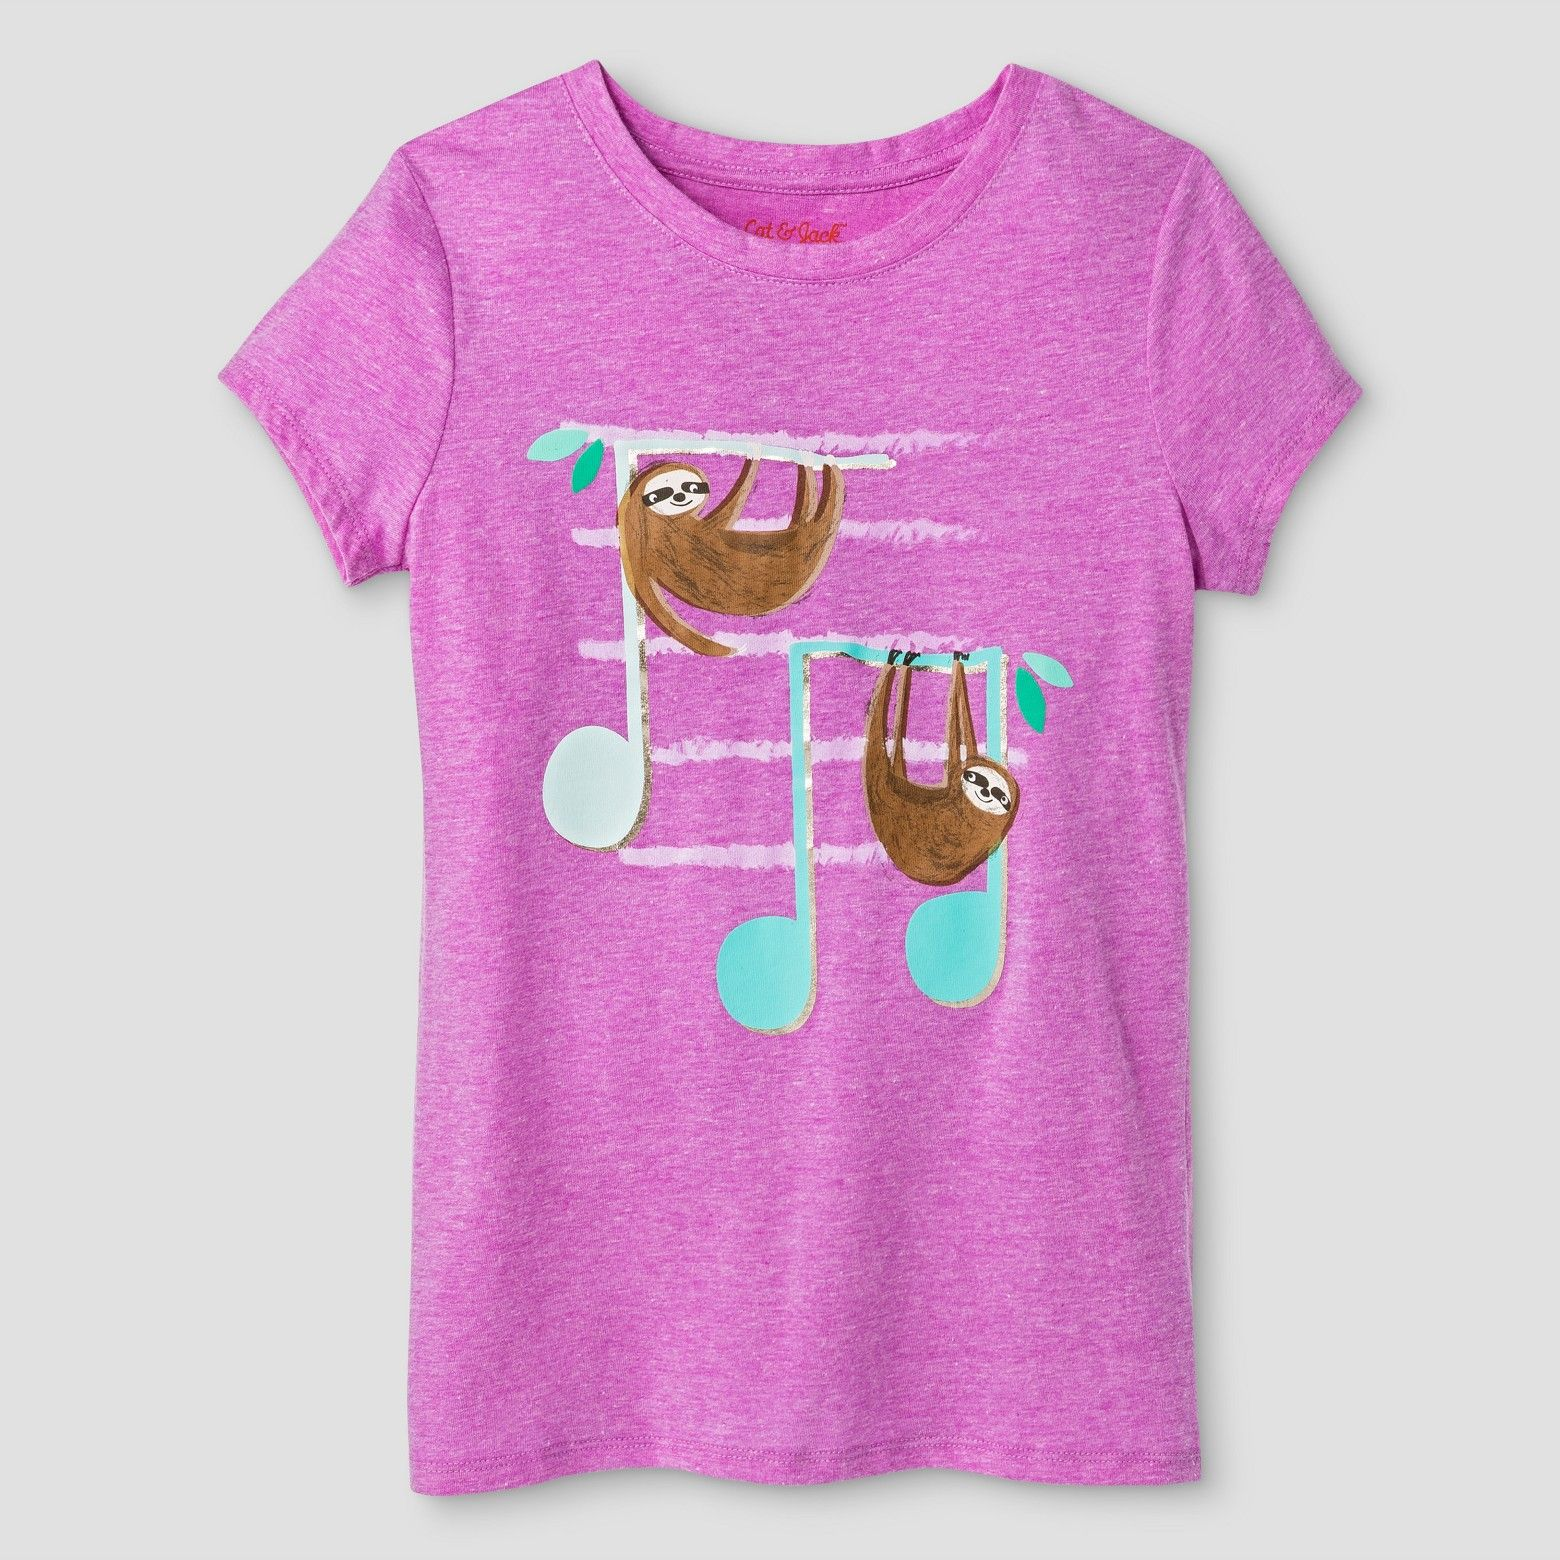 This Girls Sloth Short Sleeve Graphic Tee from Cat & Jack in